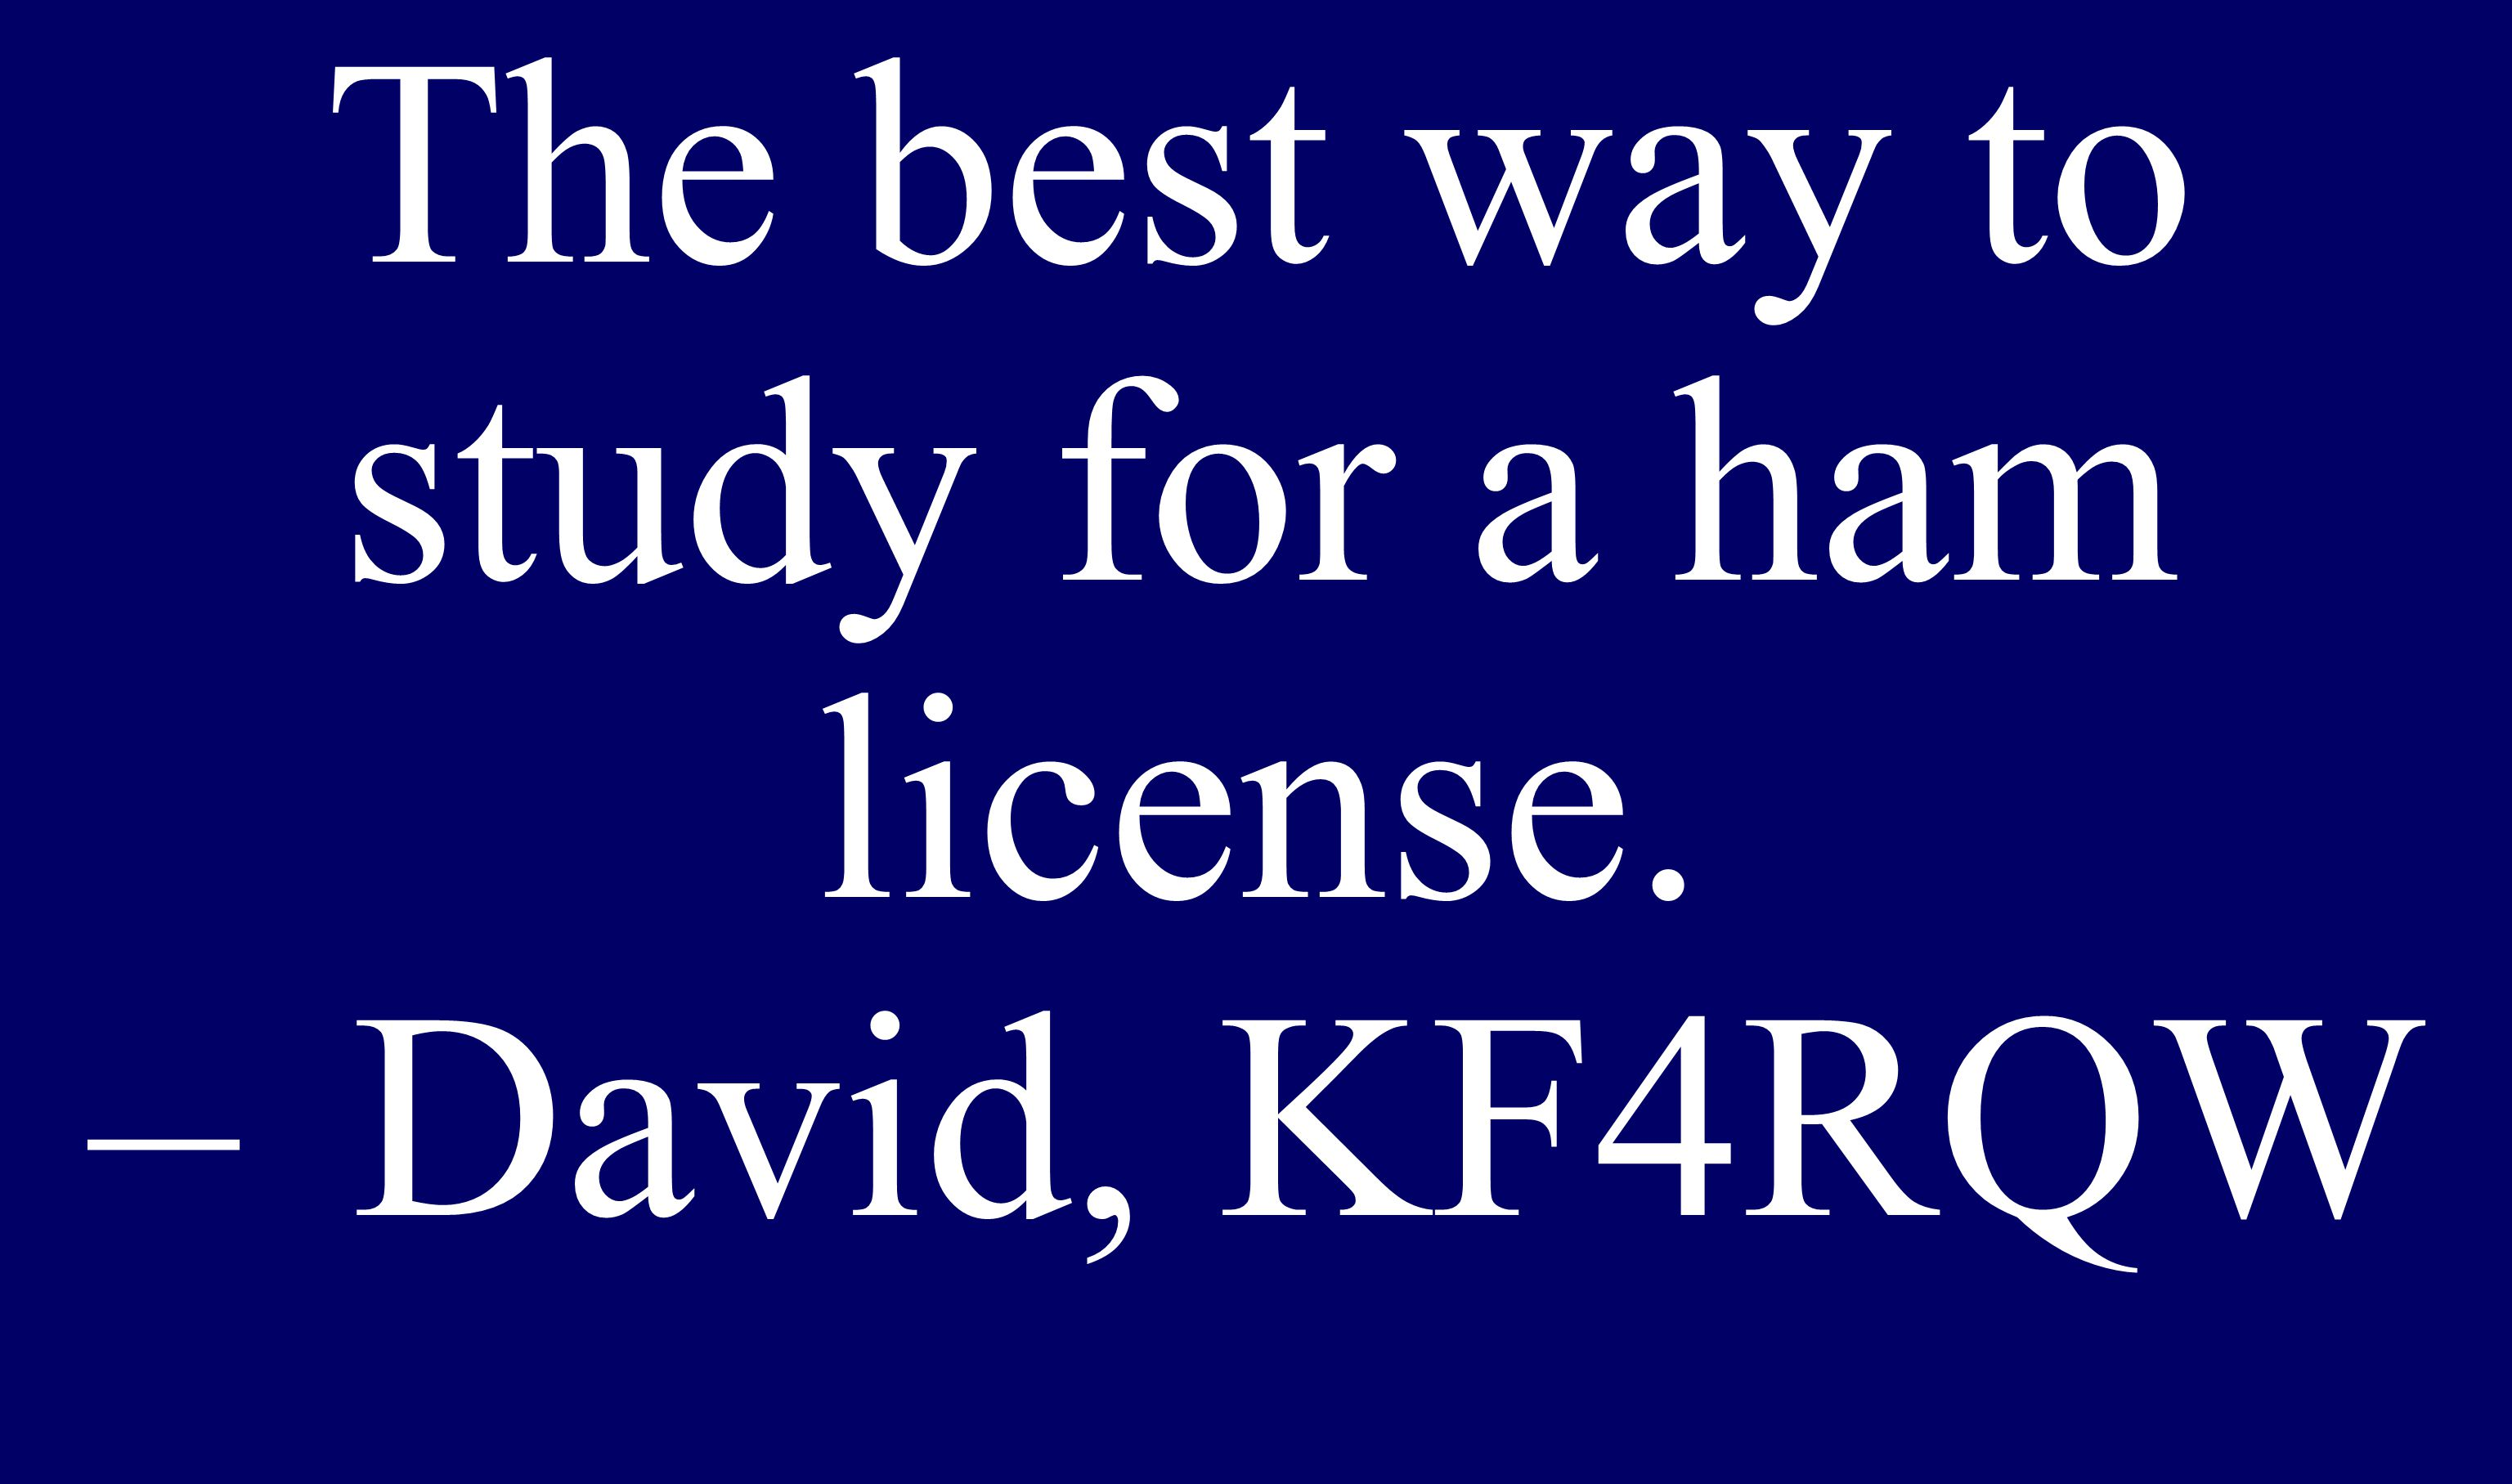 The best way to study for a ham license. –David, KF4RQW